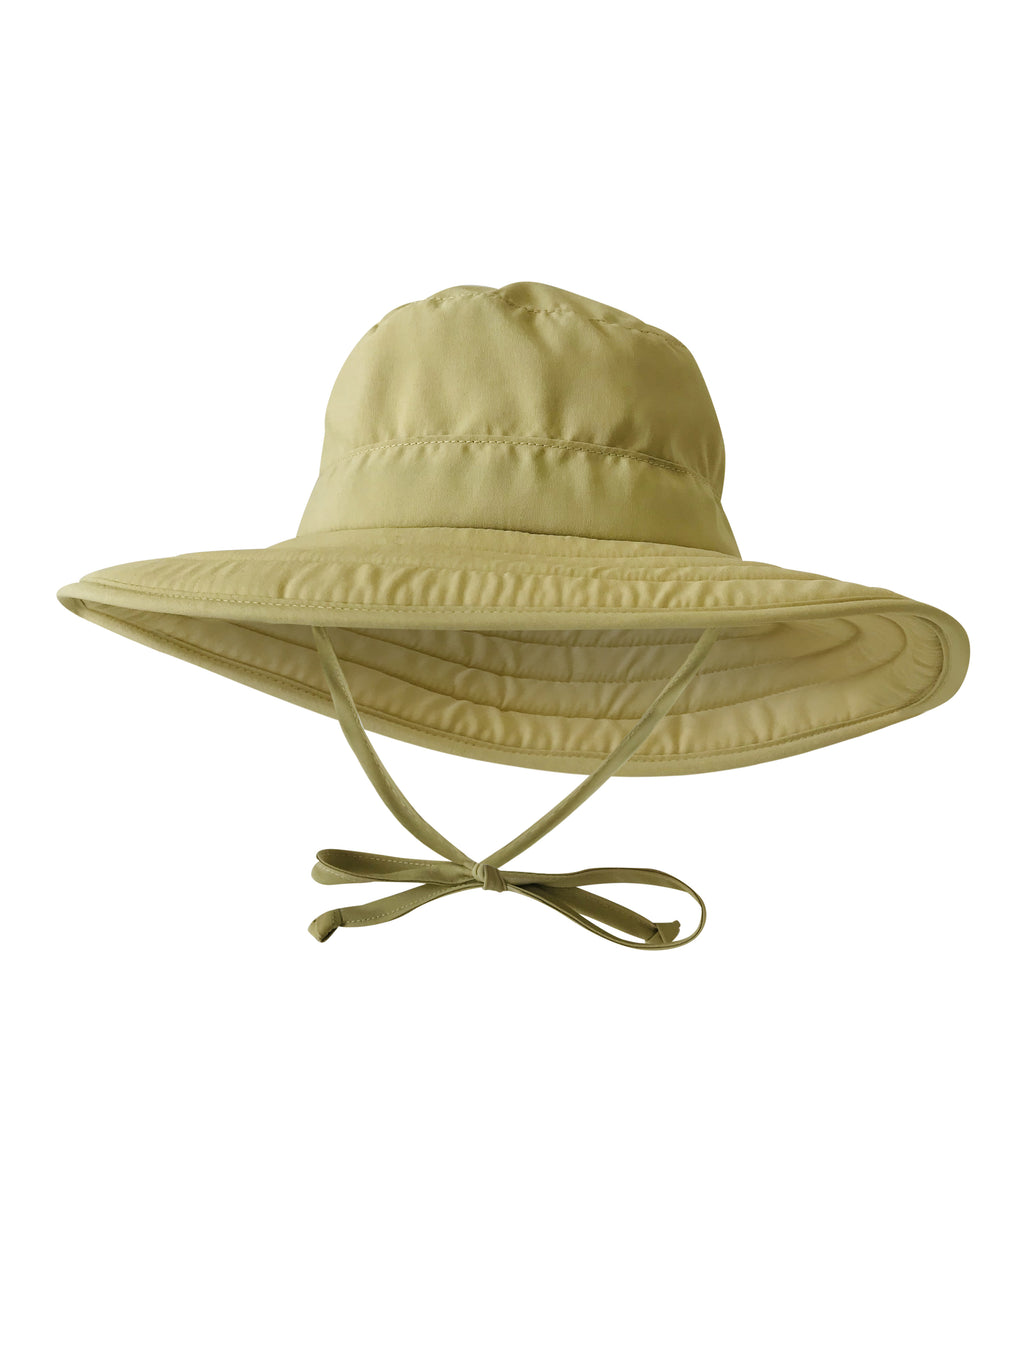 Children's ZeuKnLu Hemp Sun Hat Without Fleece Liner Front View